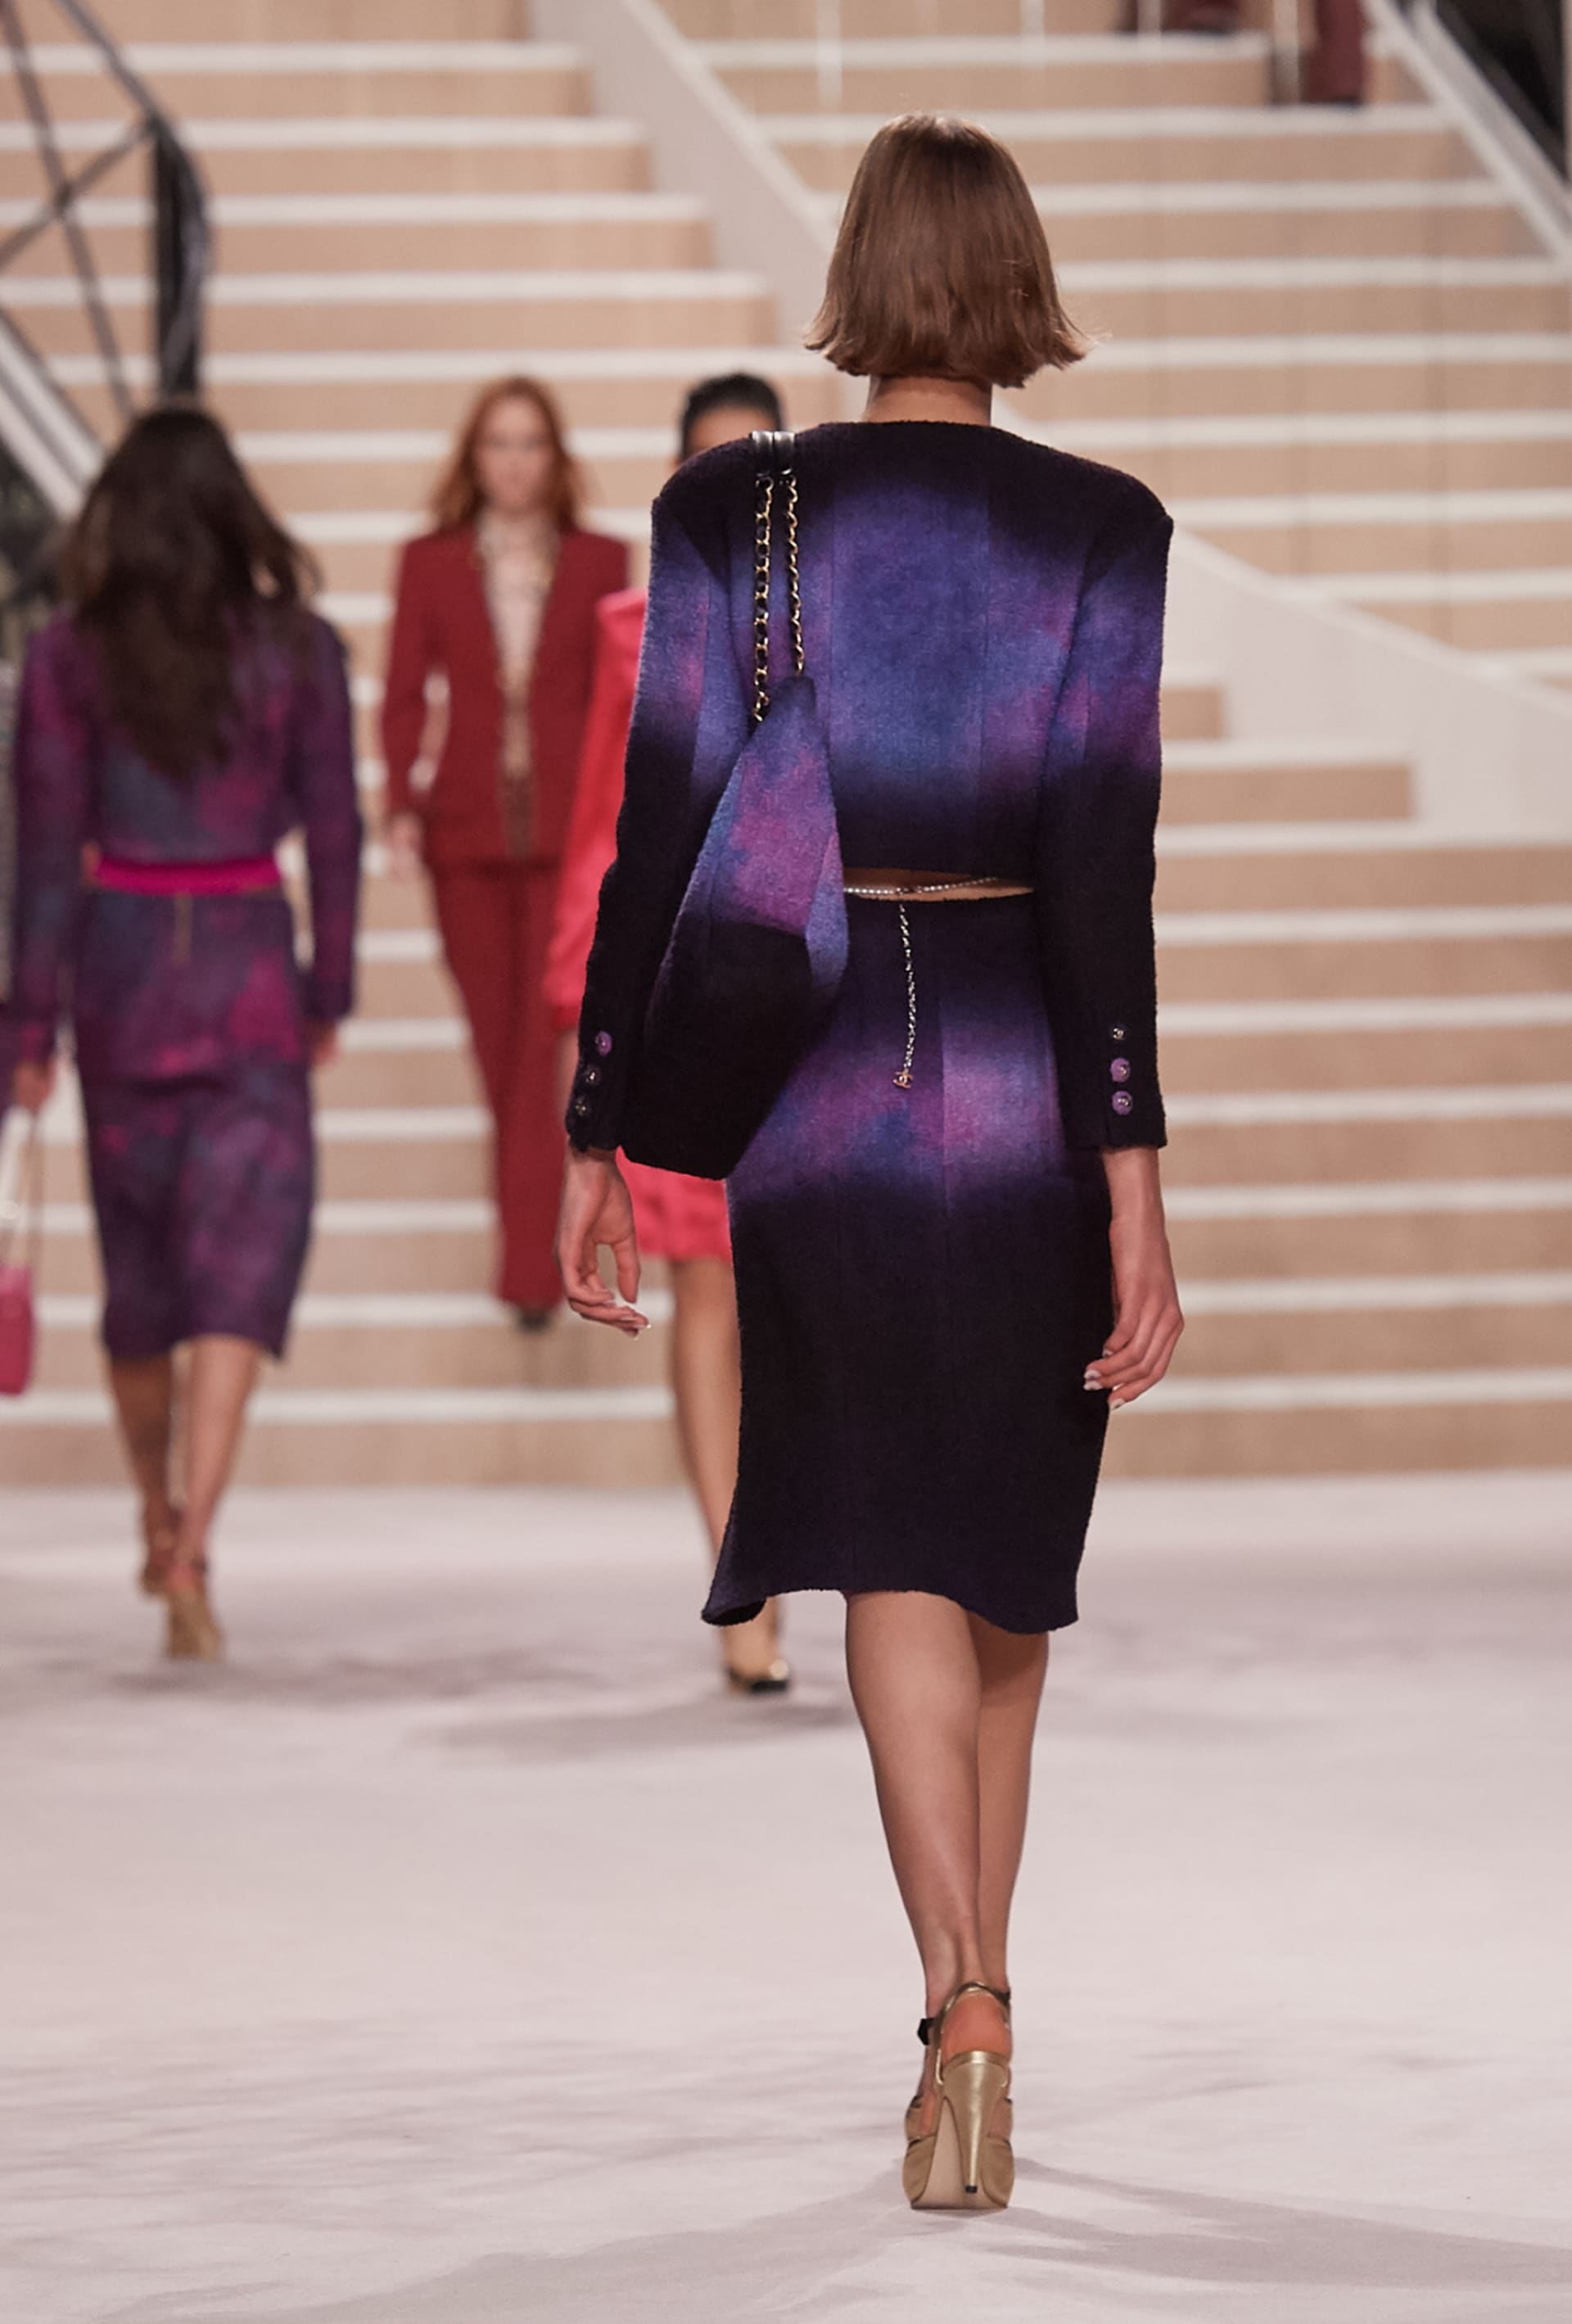 View 3 - Look 23 - Métiers d'Art 2019/20 - see full sized version